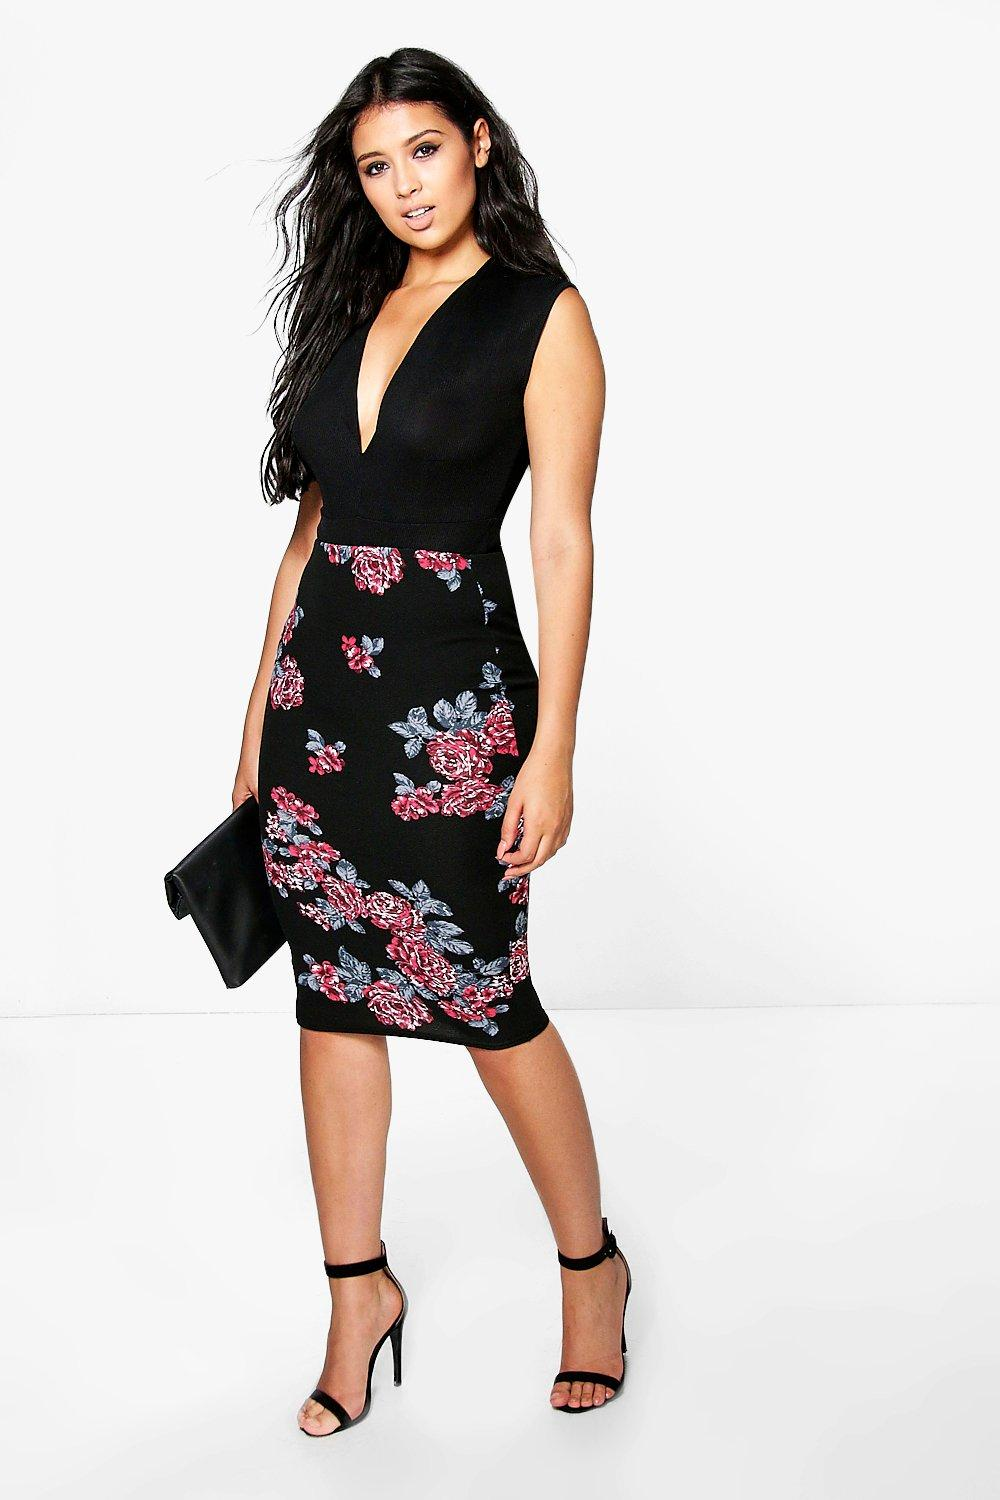 Loren Winter Floral Scuba Midi Skirt